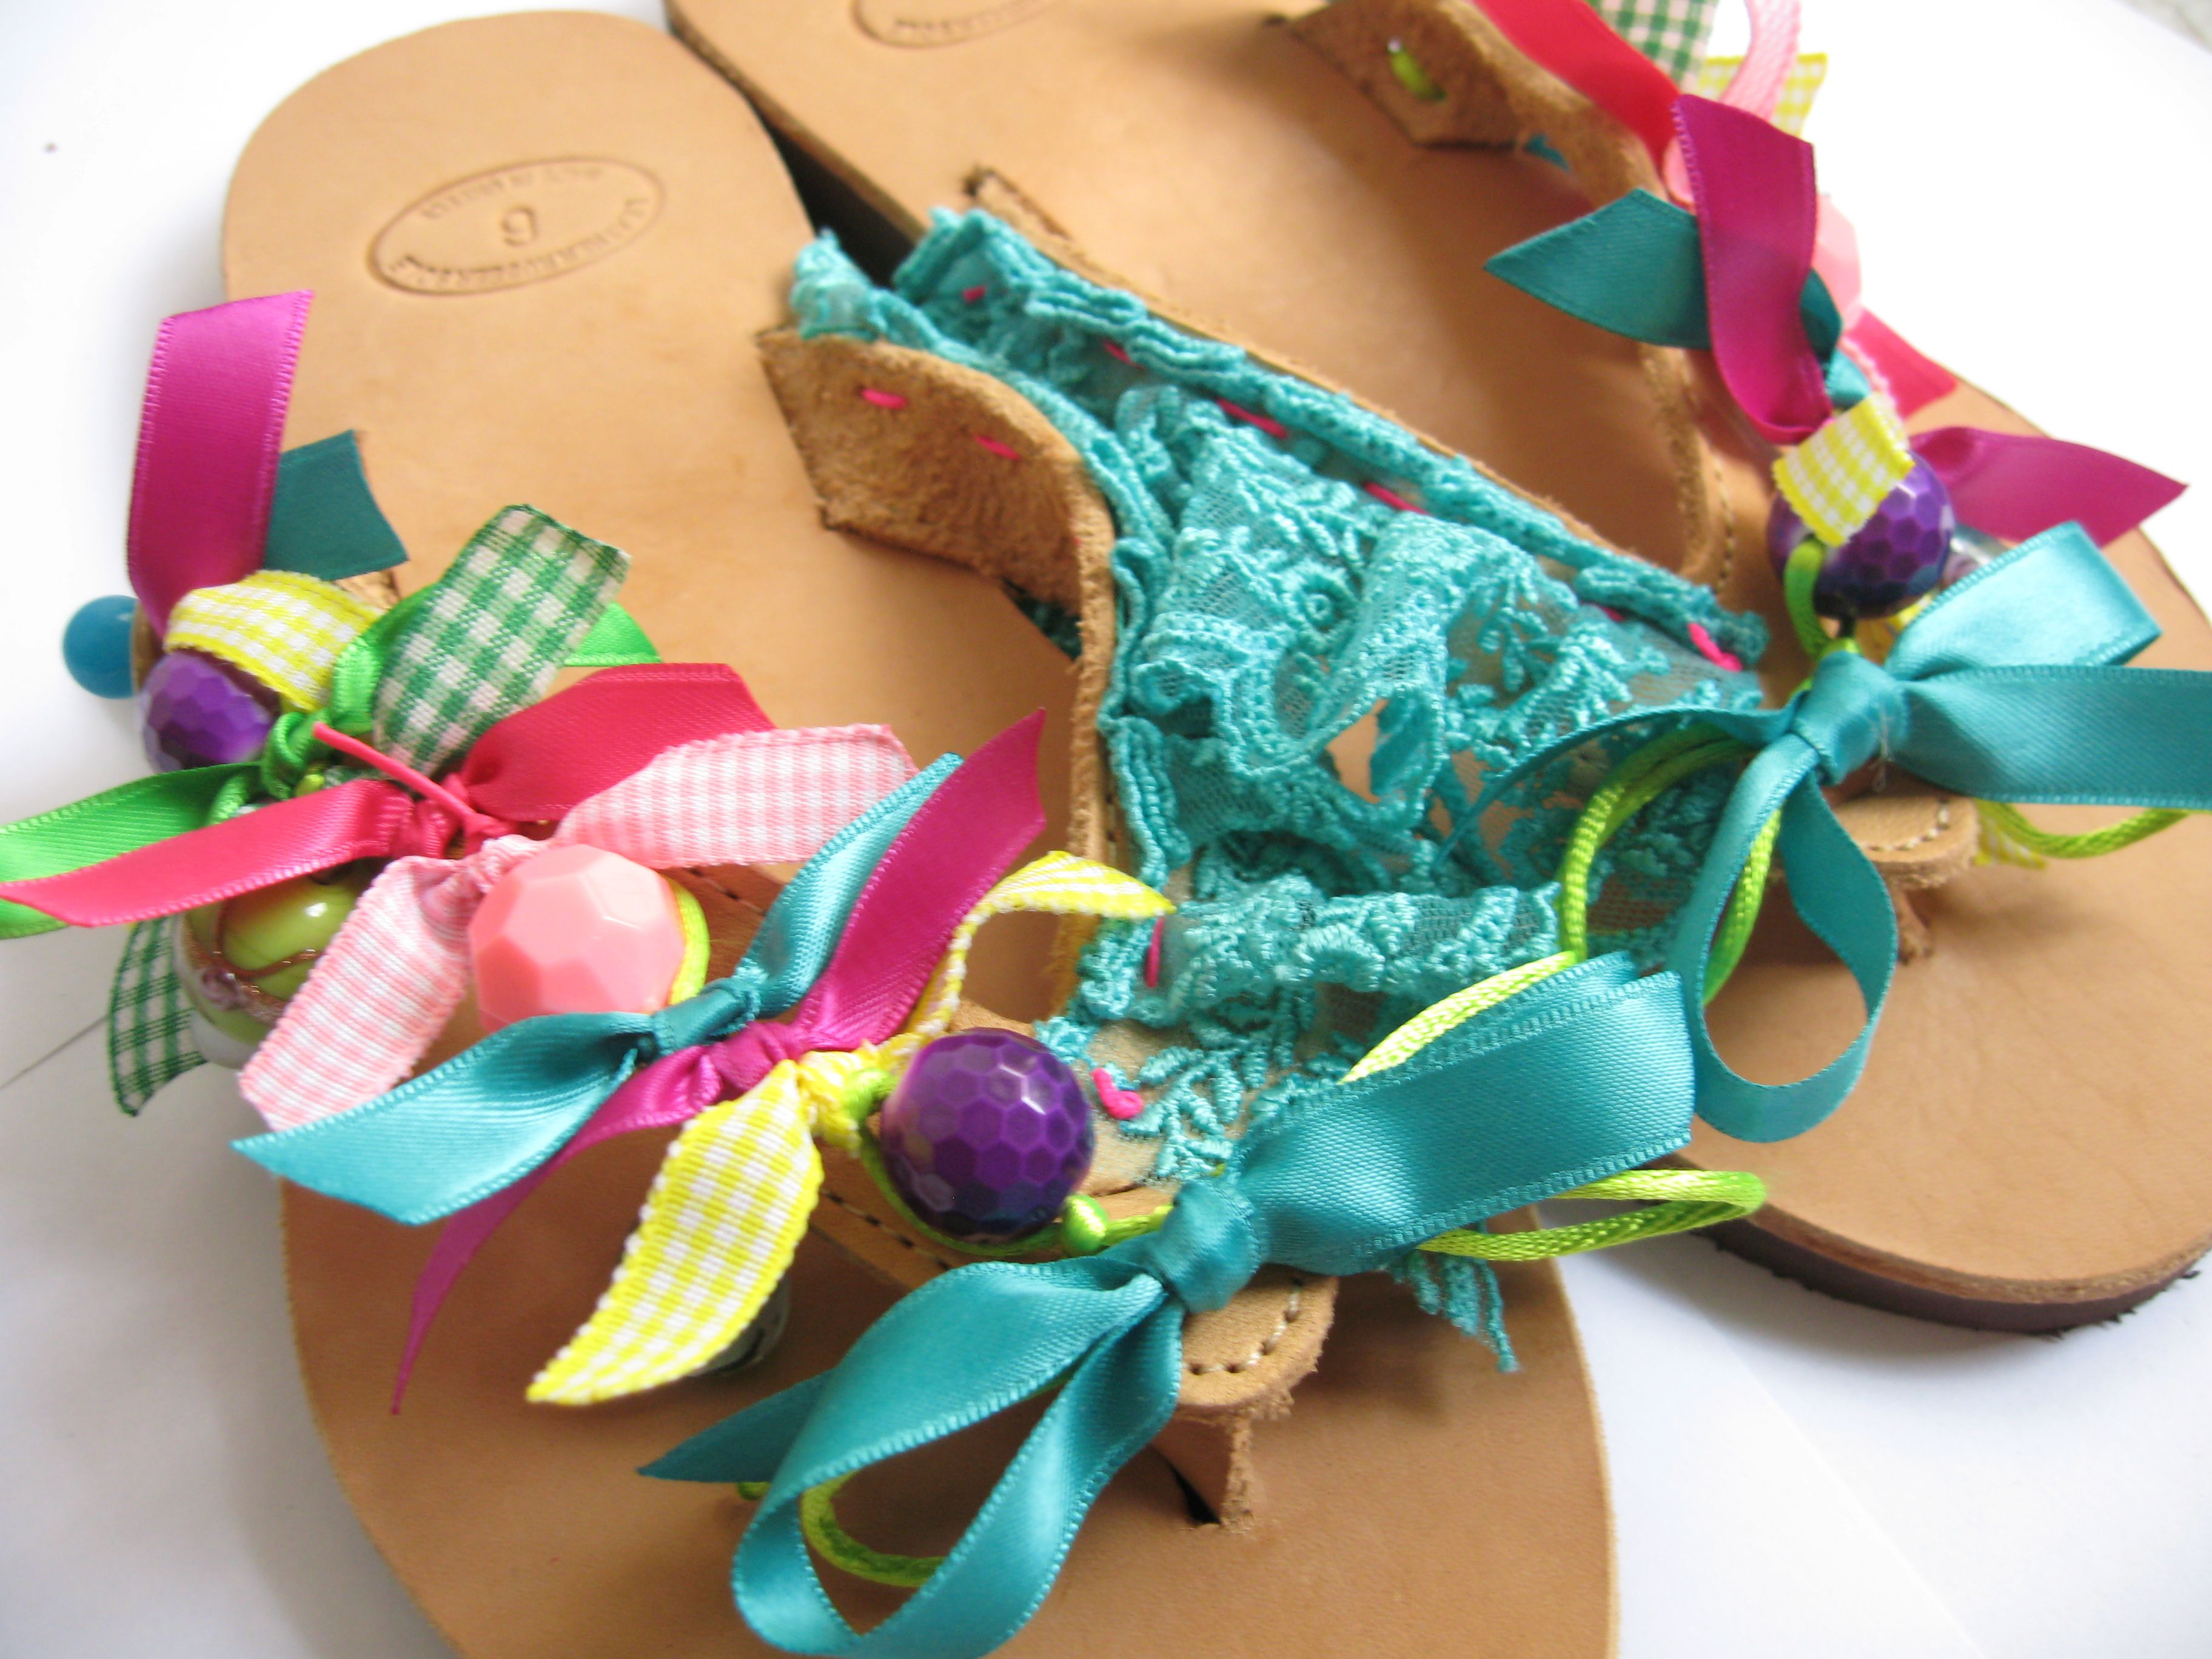 Sandals shoes facebook - Summer Leather Sandals Hanmade Decorated With Beads And Ribbons Https Www